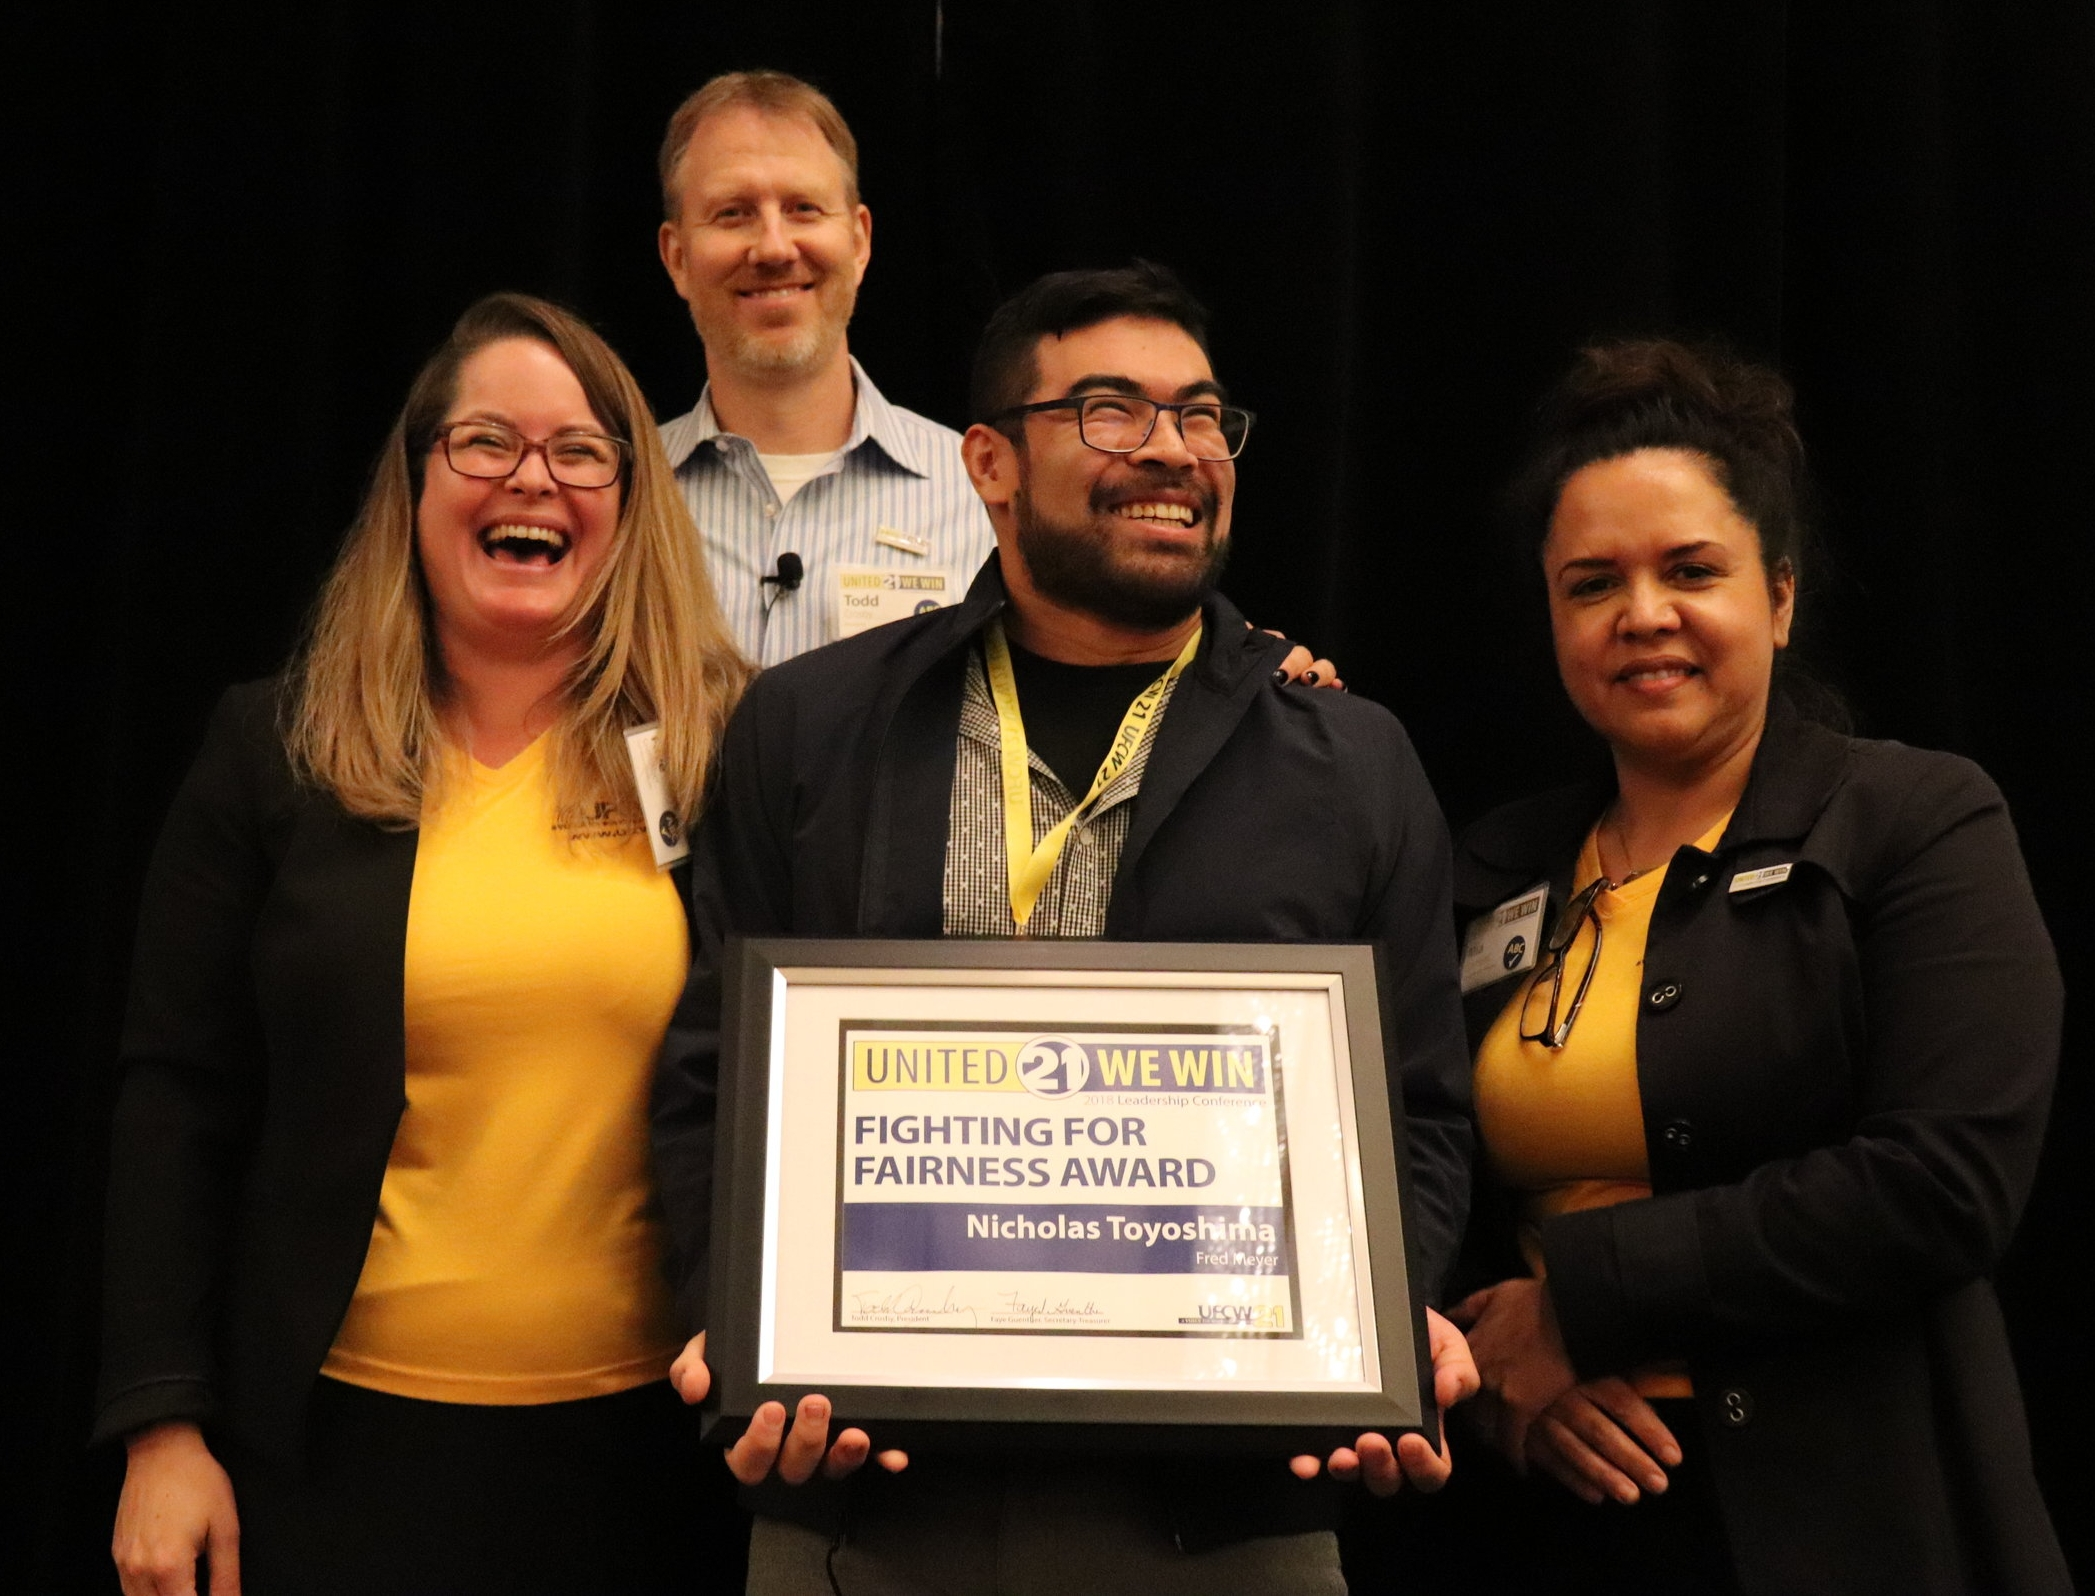 Fighting for Fairness Award winner Nicholas Toyoshima from Fred Meyer